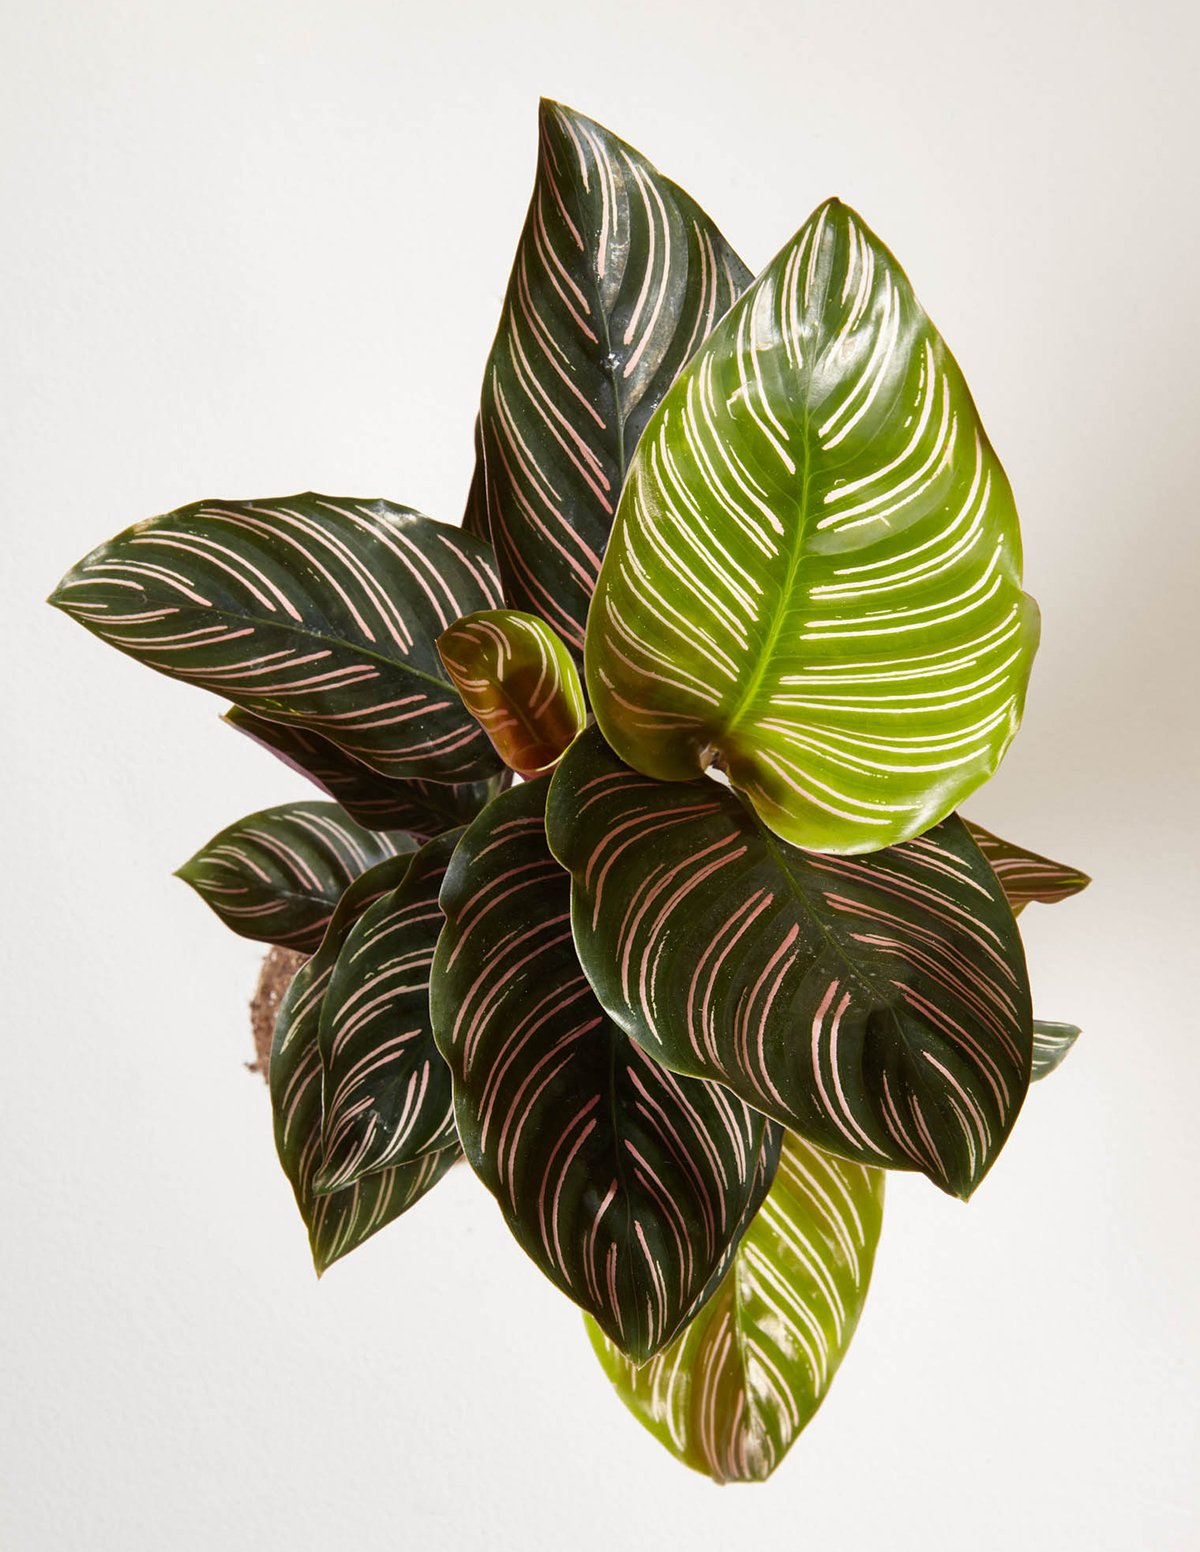 29 Easy Houseplants to Beat the Winter Blues! Calathea Pinstripe #HousePlants #EasytoGrow #Gardening #LowMaintenance #HomeDecor #IndoorPlants #DIY